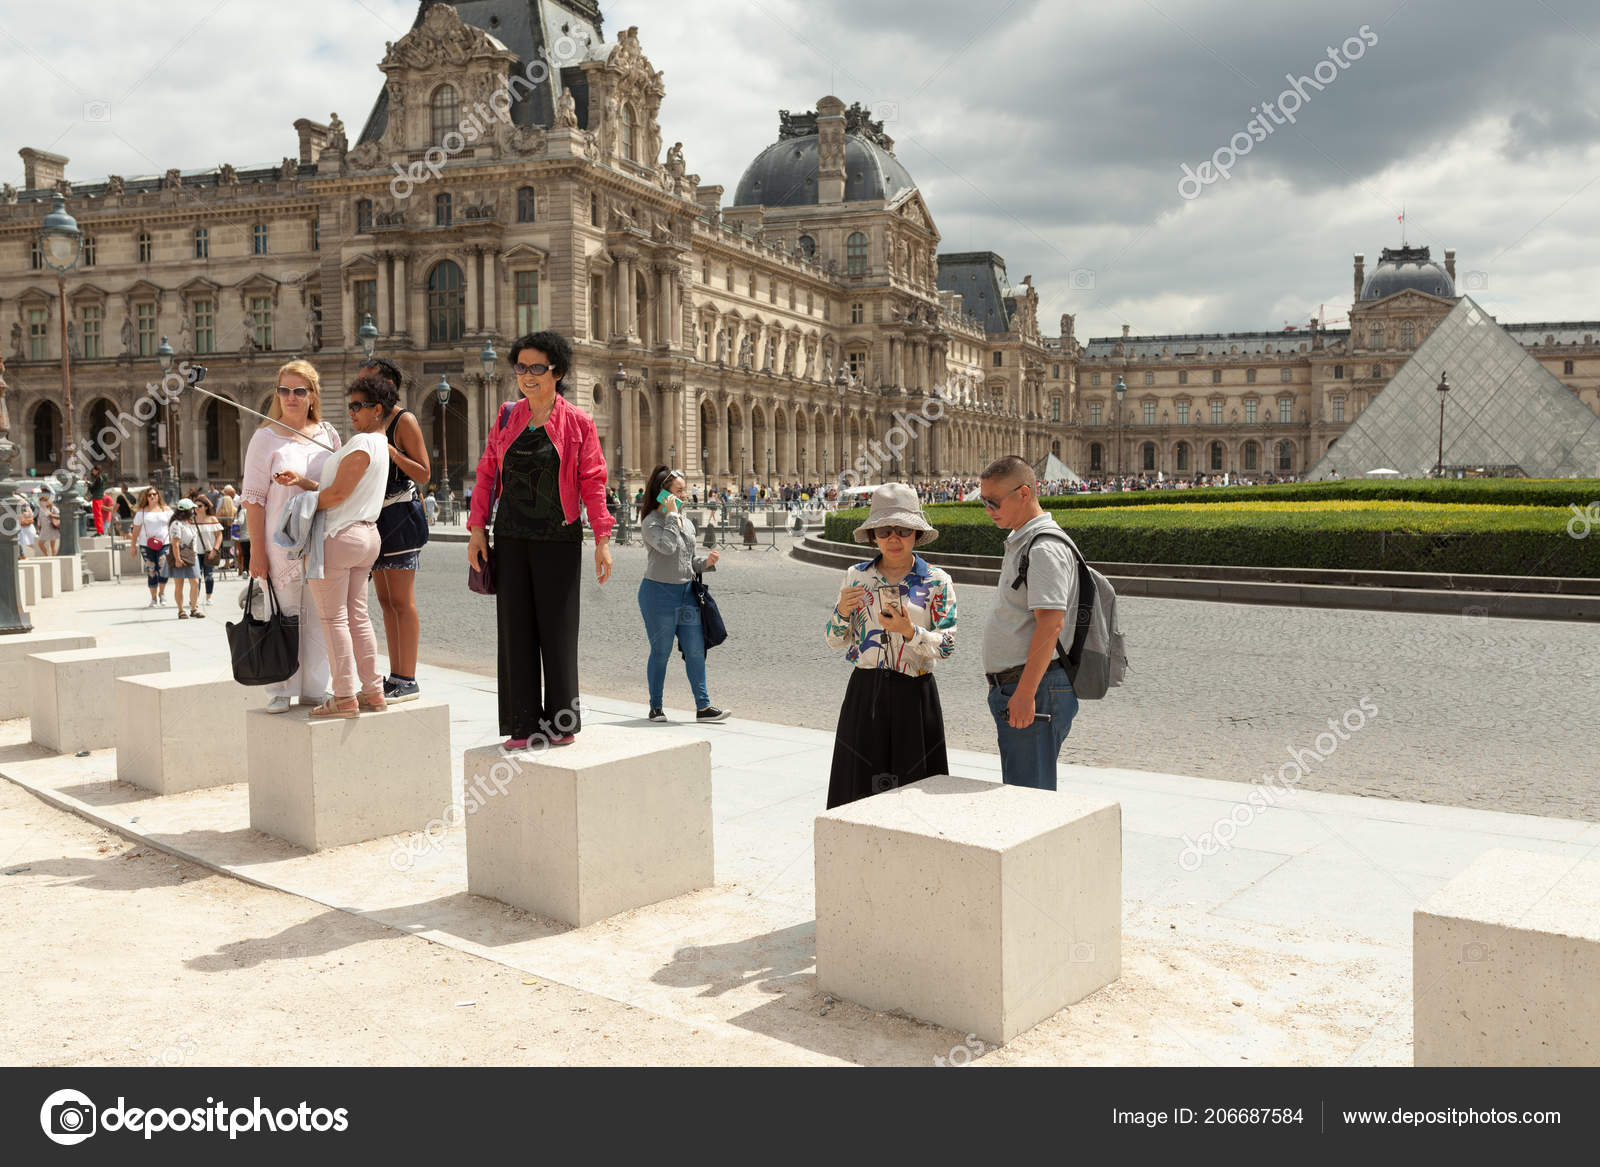 paris france june 01 2018 tourists taking selfie photos in